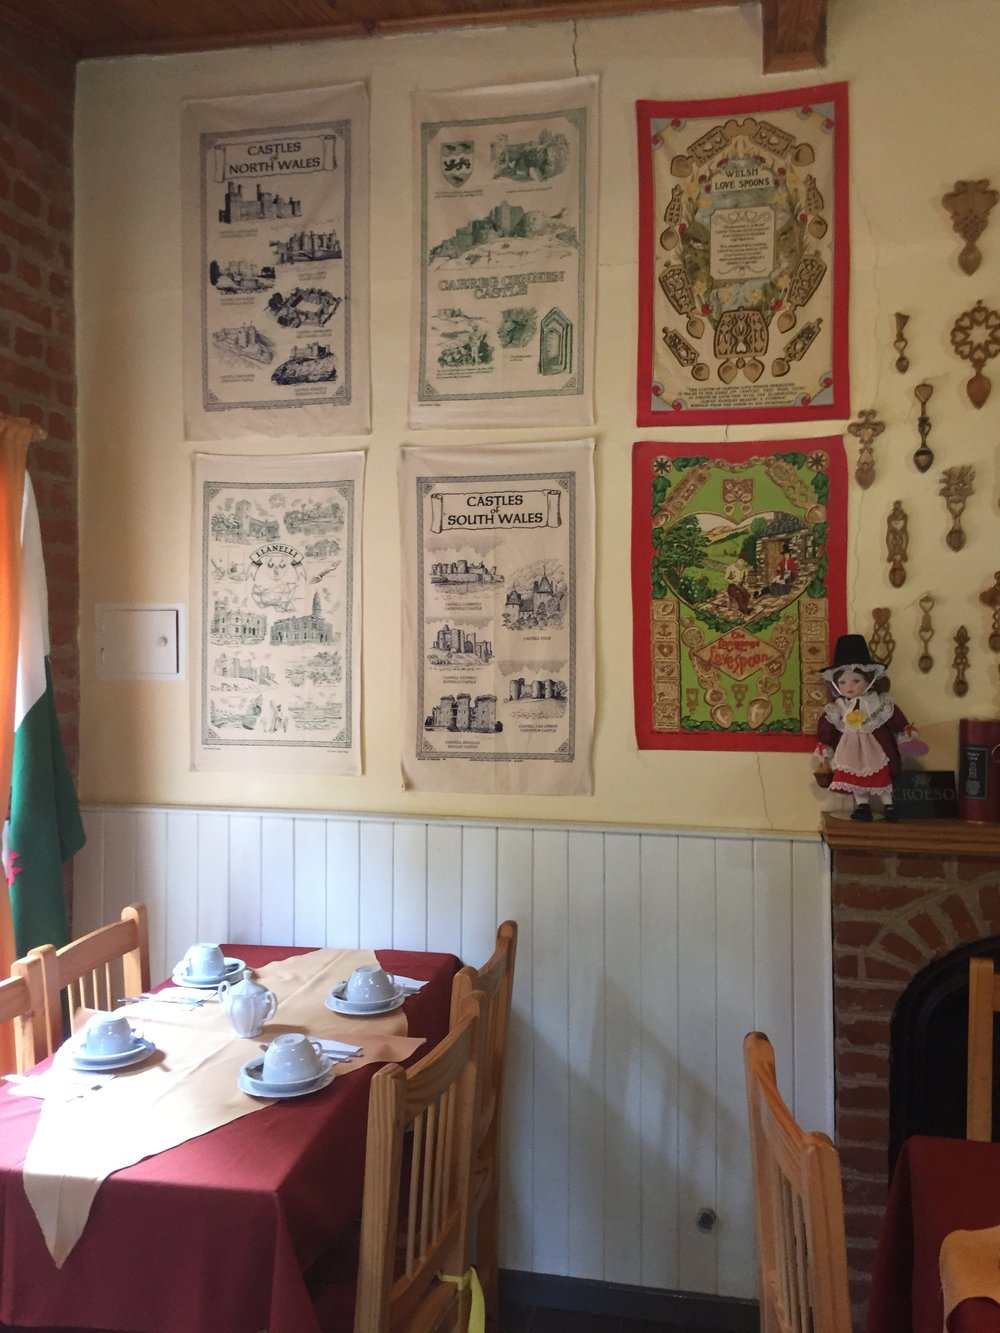 I also have that Castles of North Wales tea towel in the top left corner, but unlike mine, theirs is not stained pink by a laundry accident.